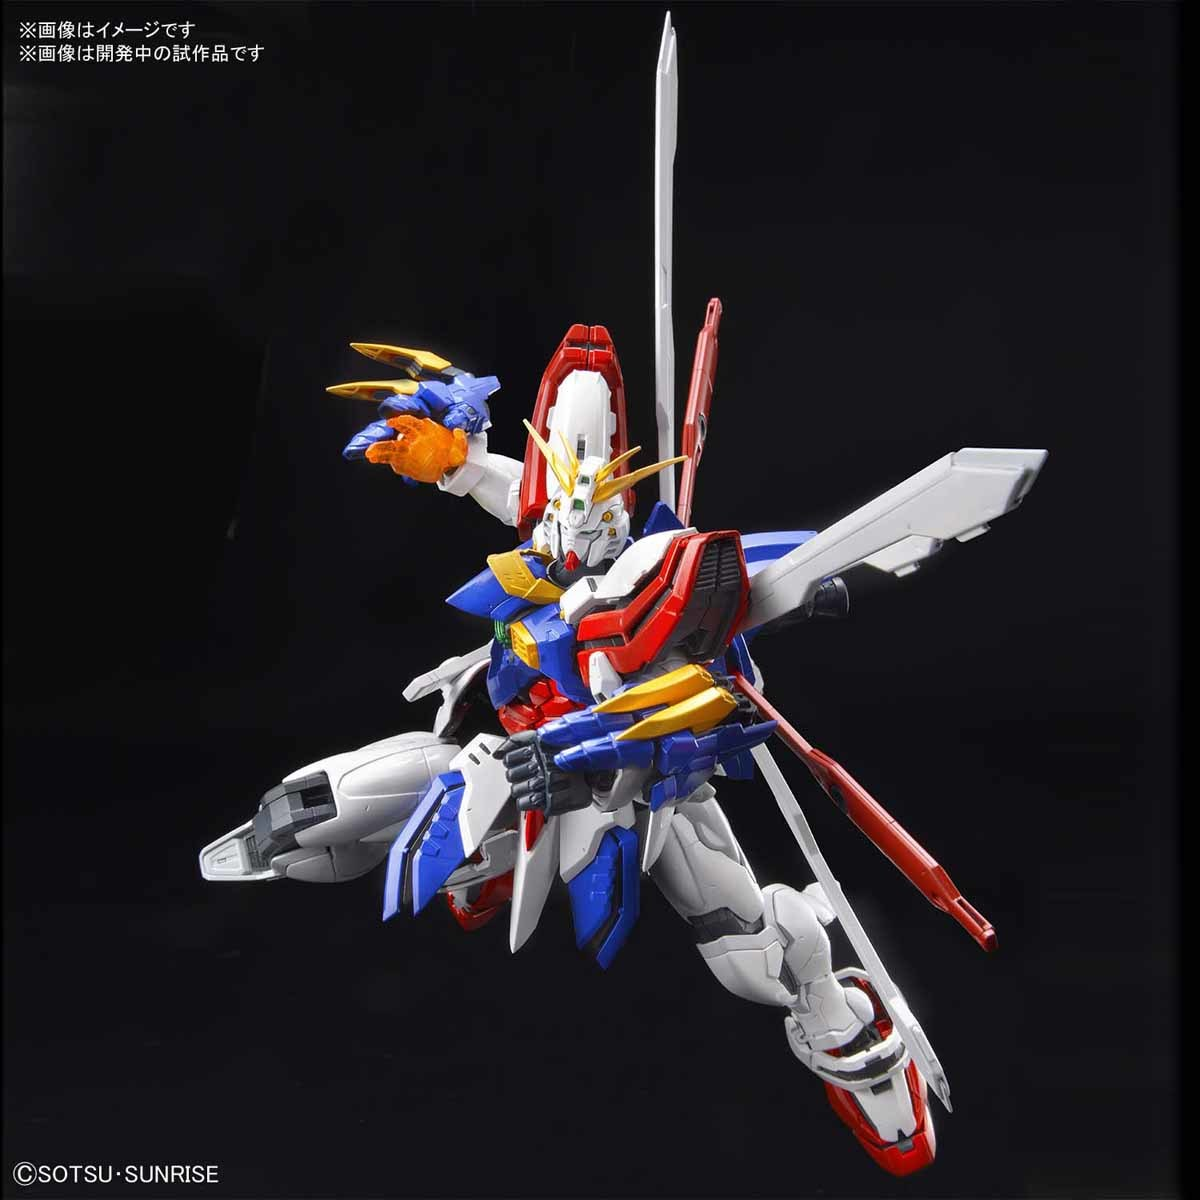 NEW IMAGES HiRM 1/100 God Gundam. October release, Price 14,300 Yen